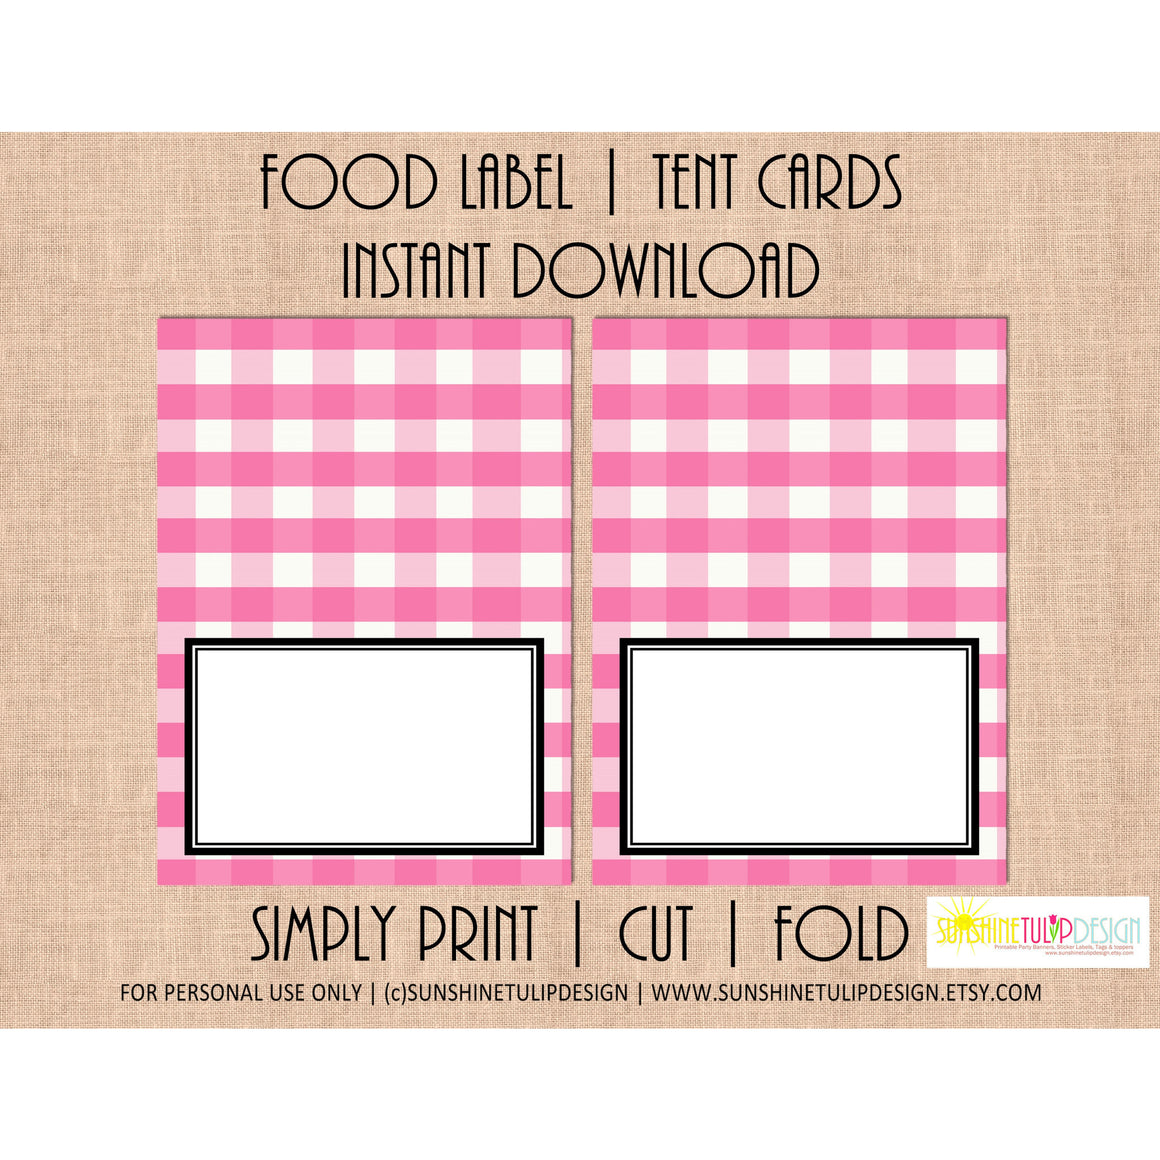 Printable Food Label Tent Cards Pink Buffalo Plaid Christmas, Holiday & All Occasion by SUNSHINETULIPDESIGN - Sunshinetulipdesign